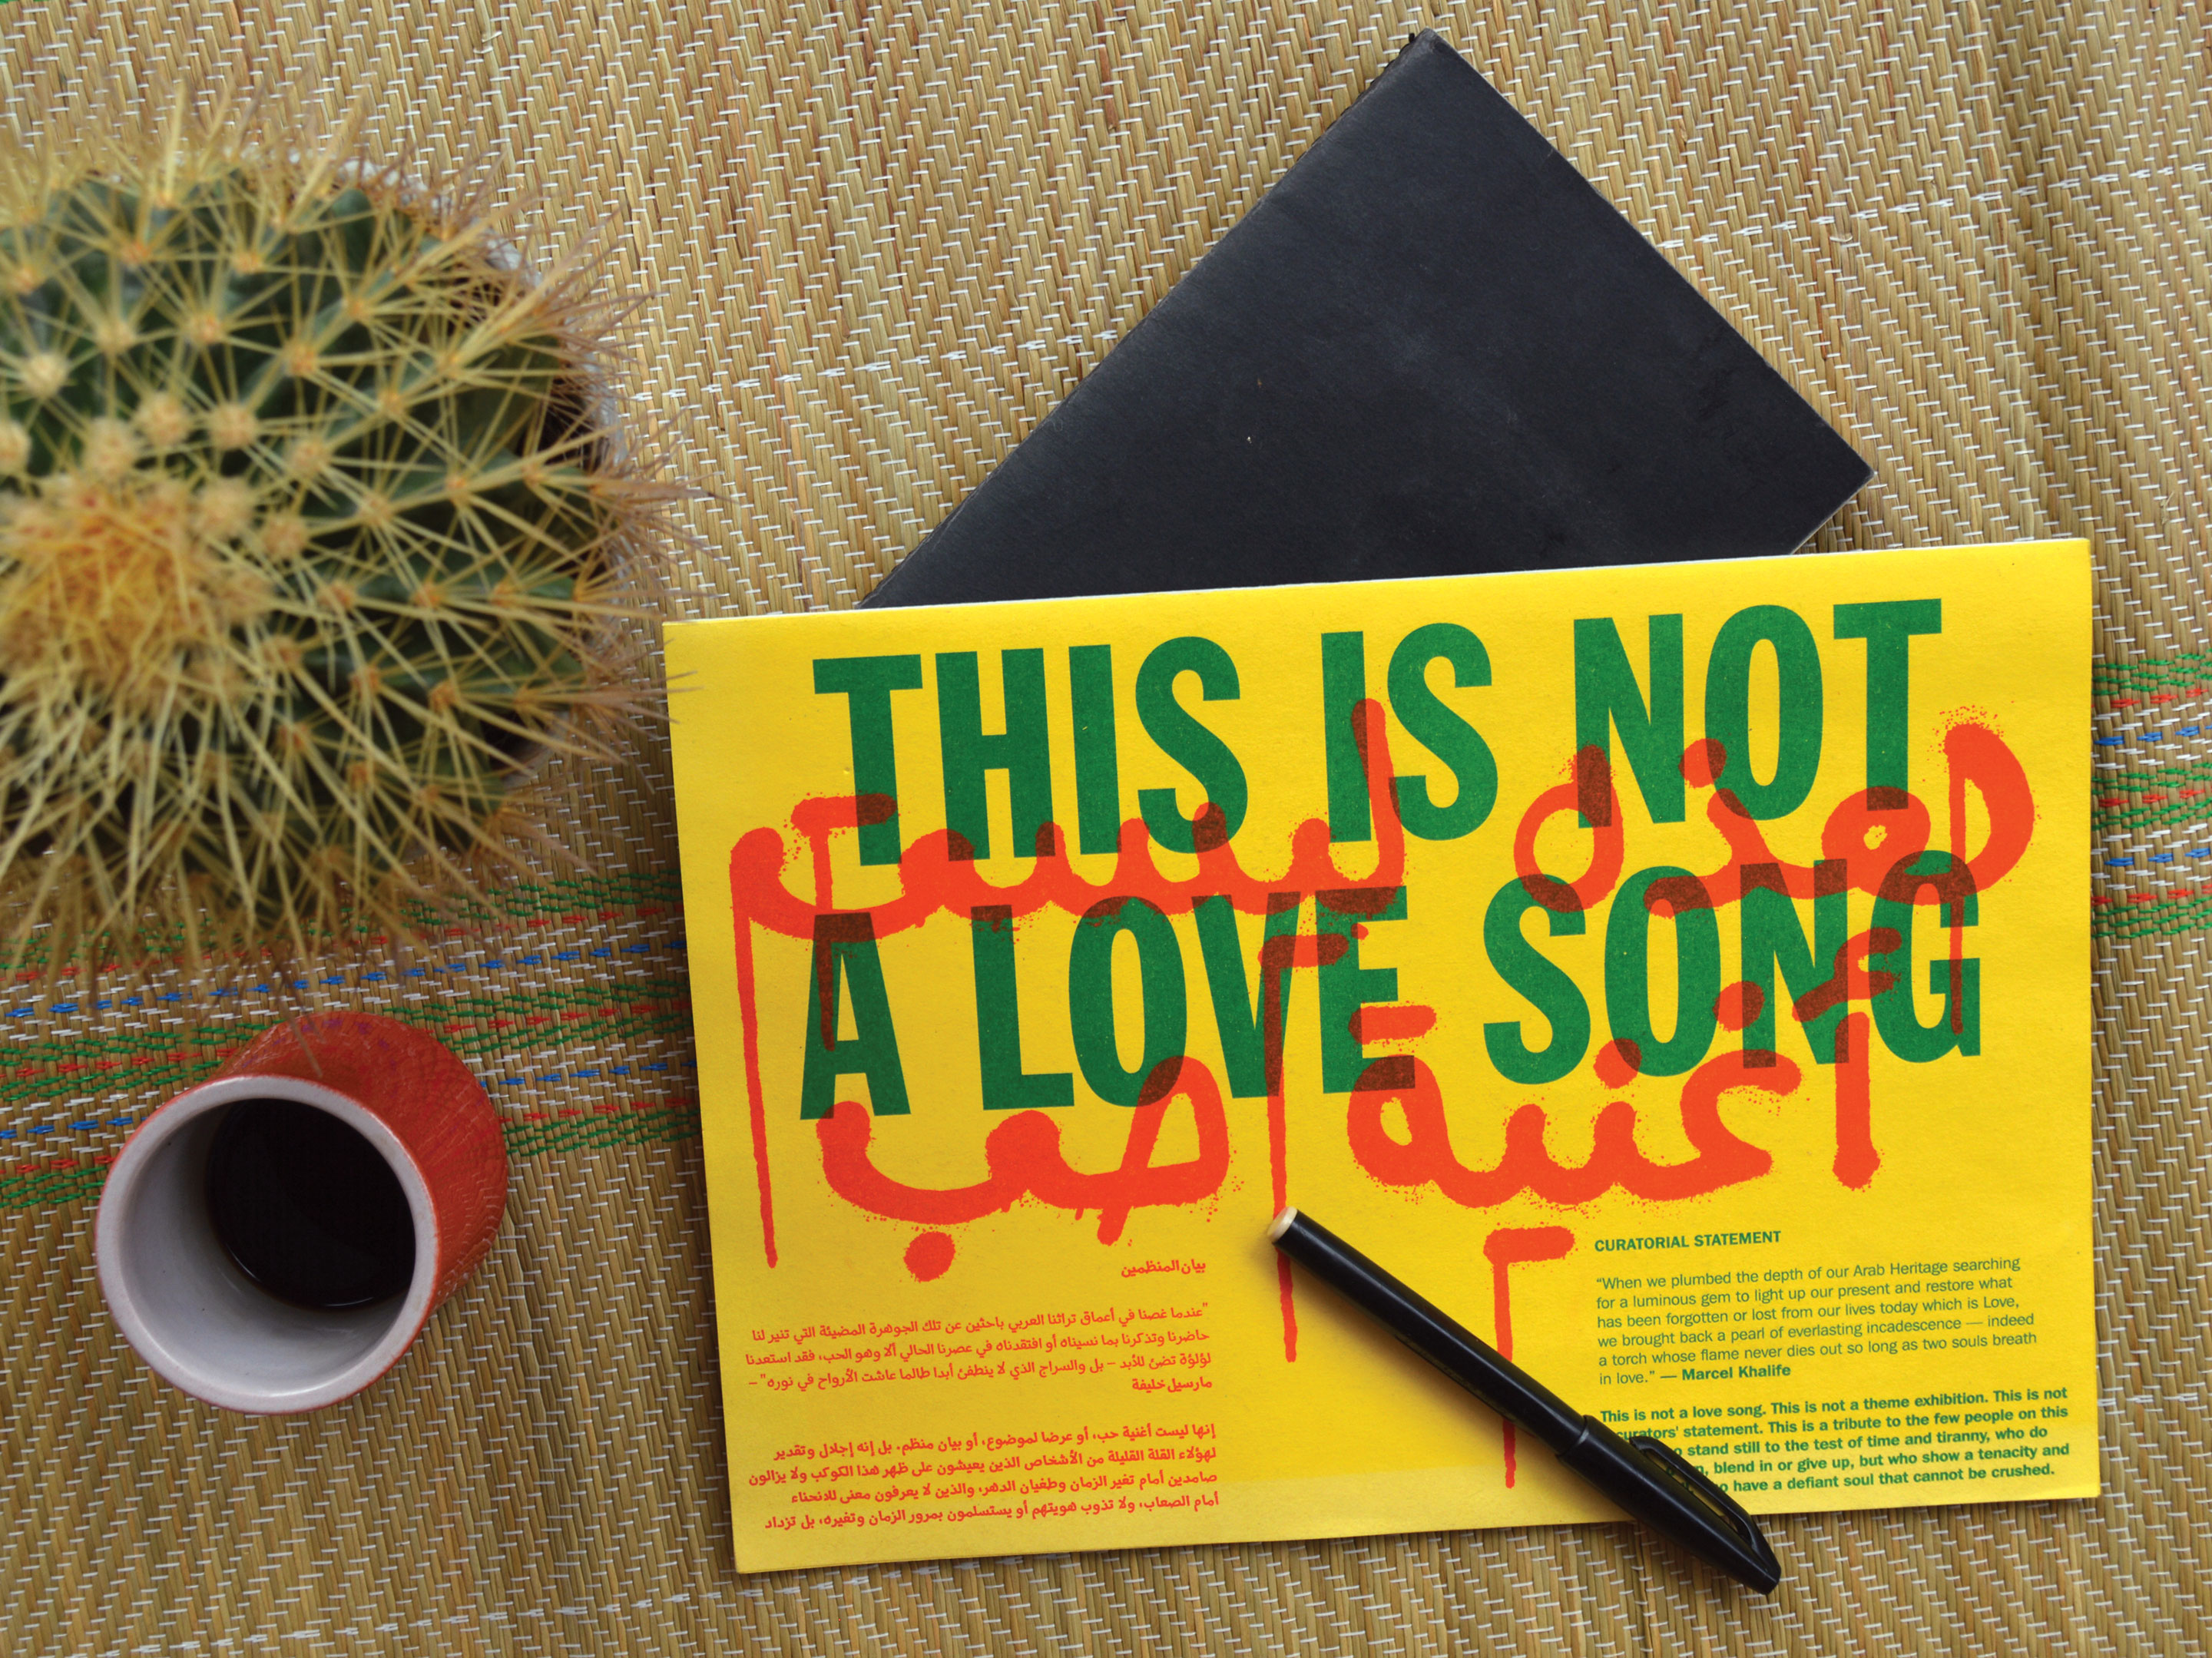 This Is Not A Love Song - Fonts In Use